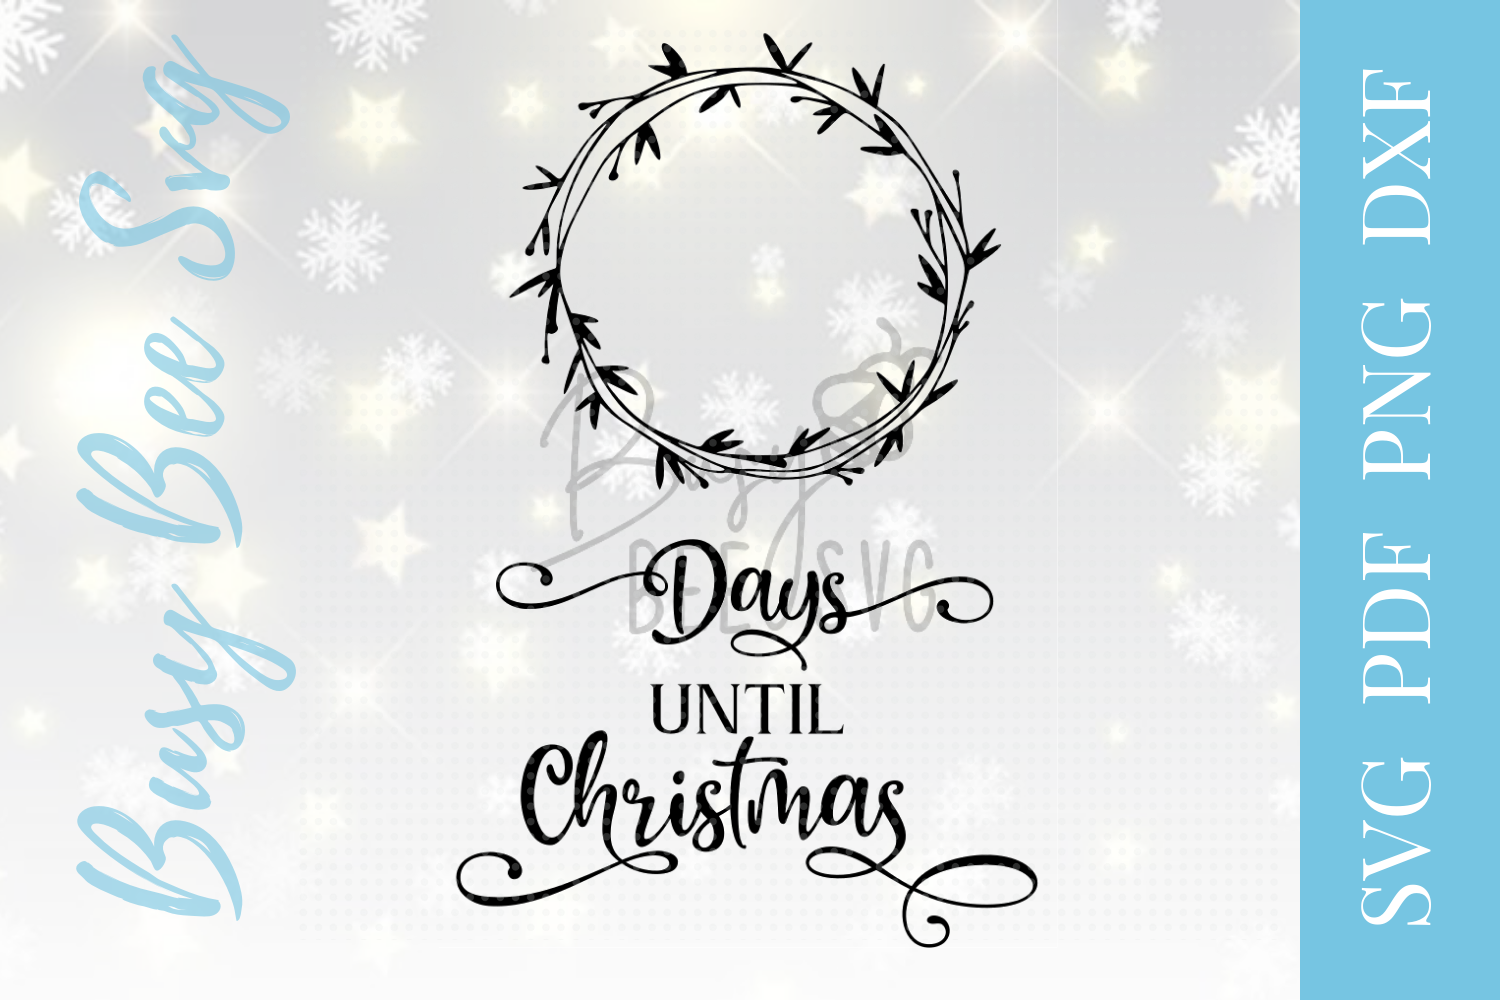 Days Until Christmas Countdown.Days Until Christmas Countdown Svg Pdf Png Dxf